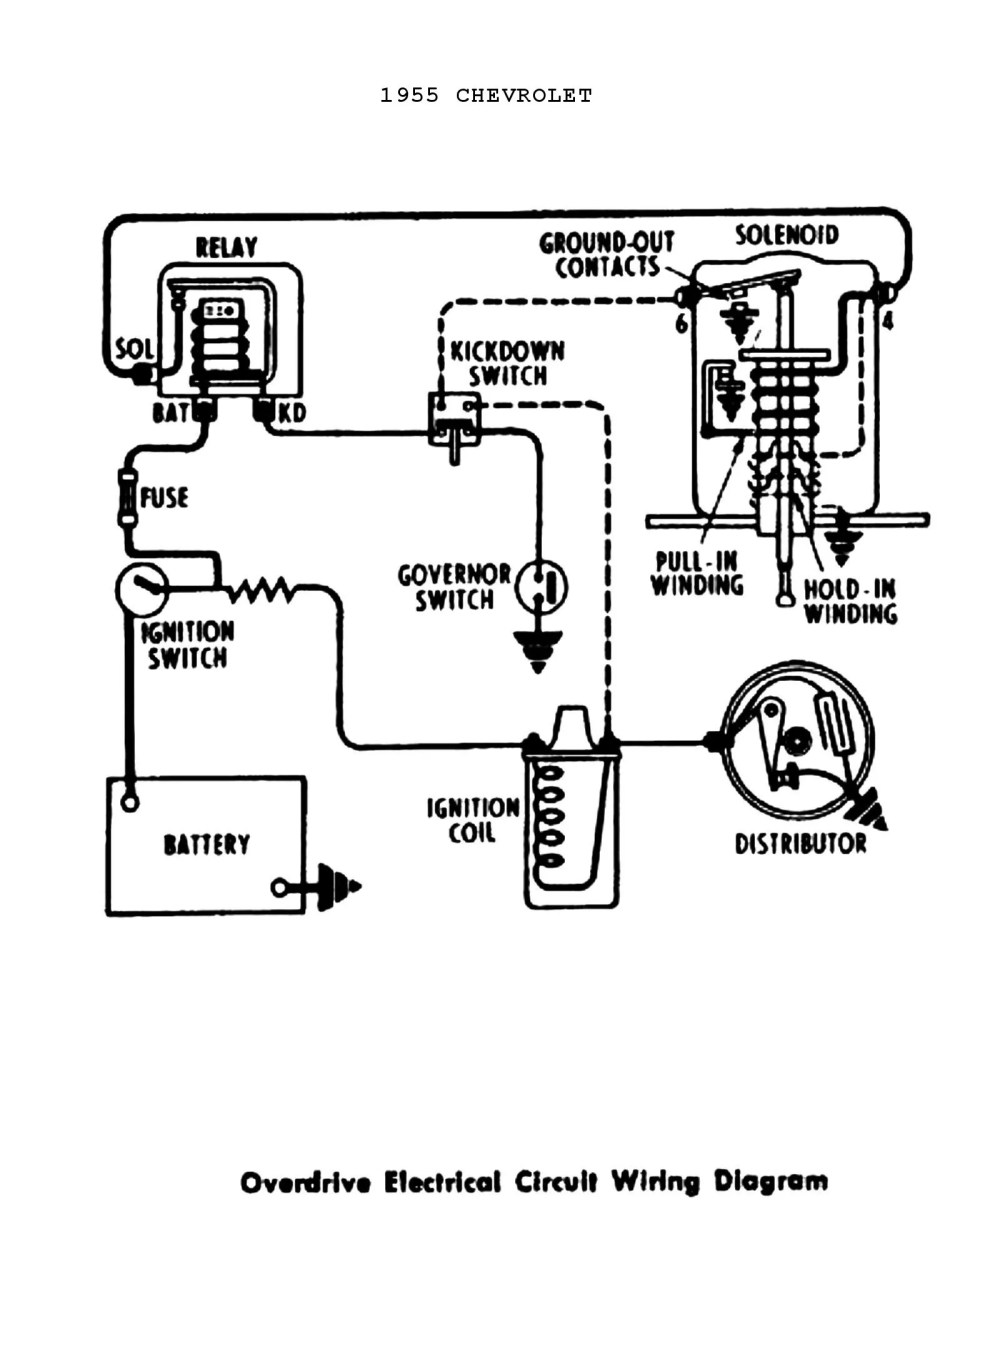 medium resolution of 1957 chevy heater wiring diagram simple wiring diagram 1954 international trucks wiring diagram chevy wiring